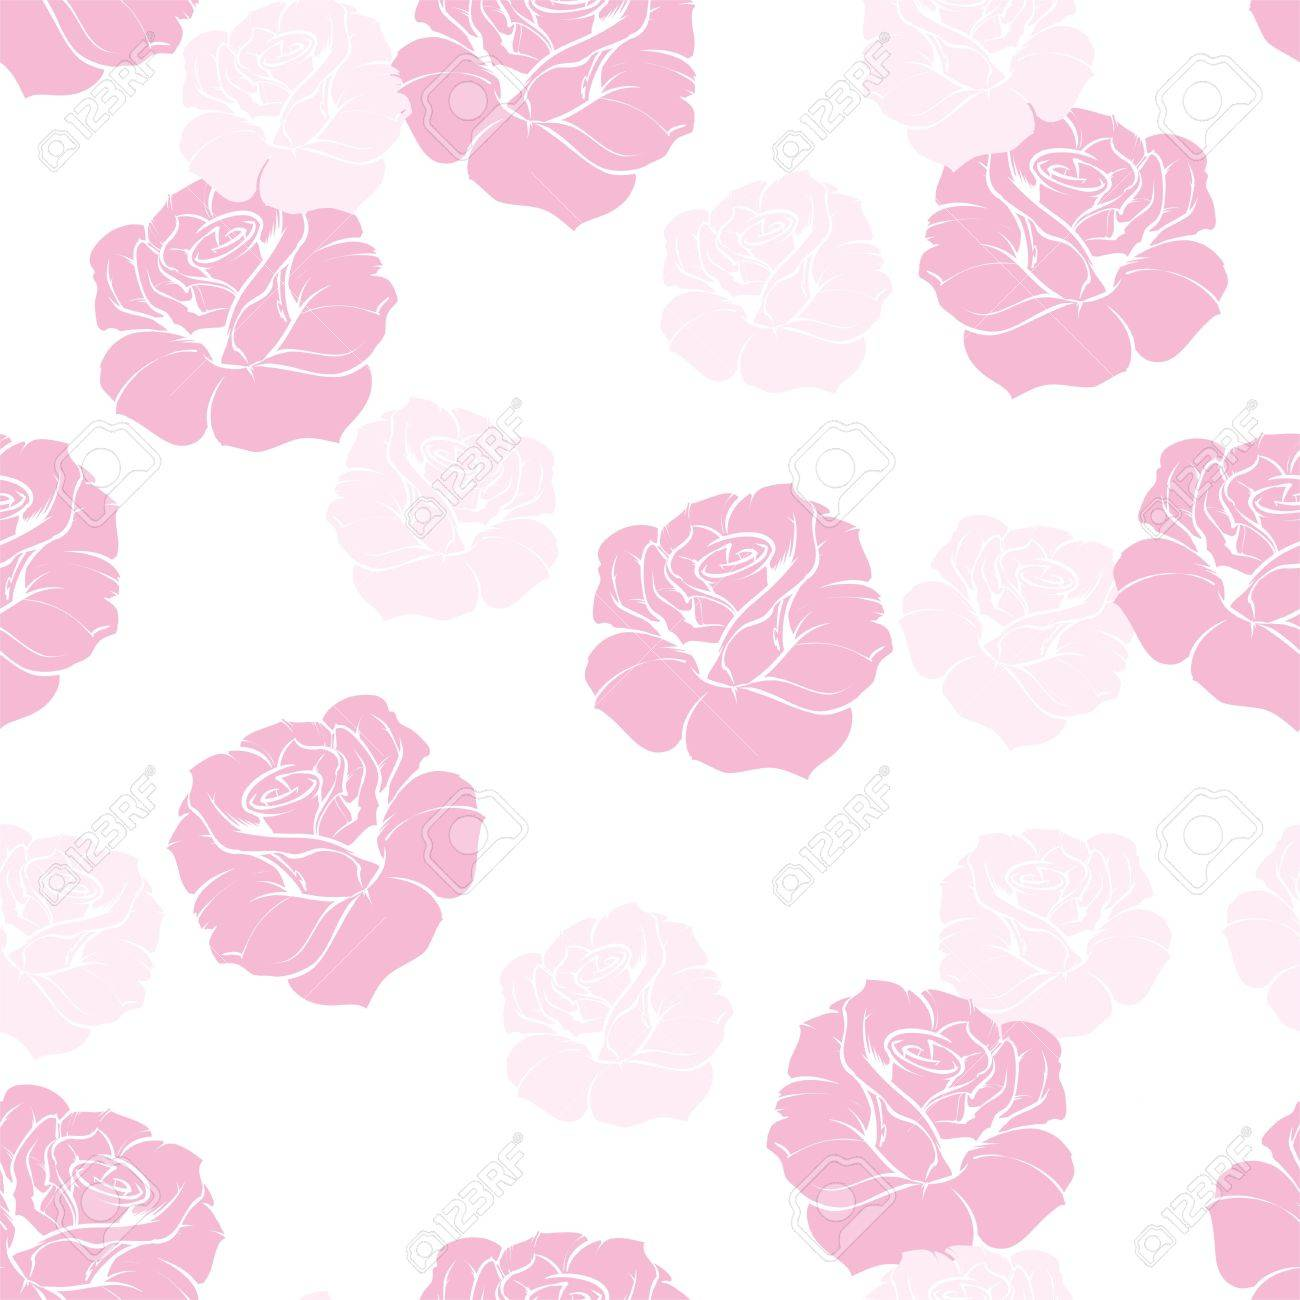 Seamless Floral Pattern Elegant Pink Rose Background Beautiful Romantic Abstract Texture With Flowers